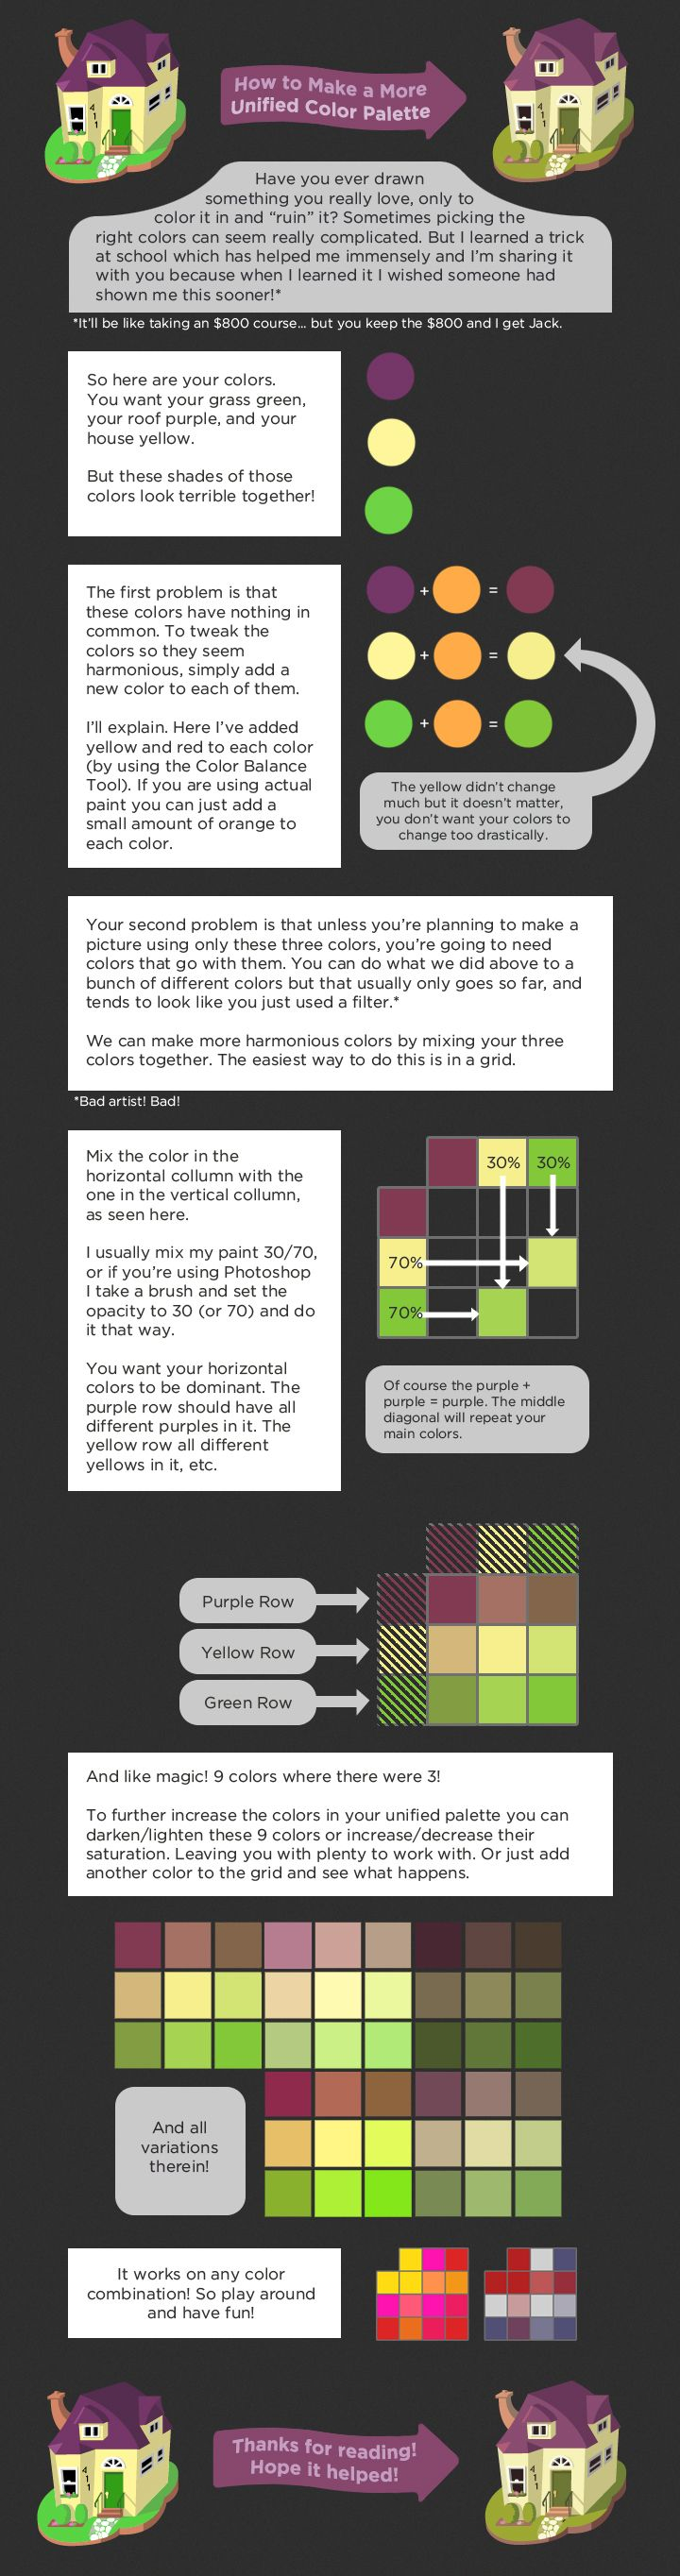 Game color theory - Unified Color Palette Tutorial By Cpresti Deviantart Com On Deviantart